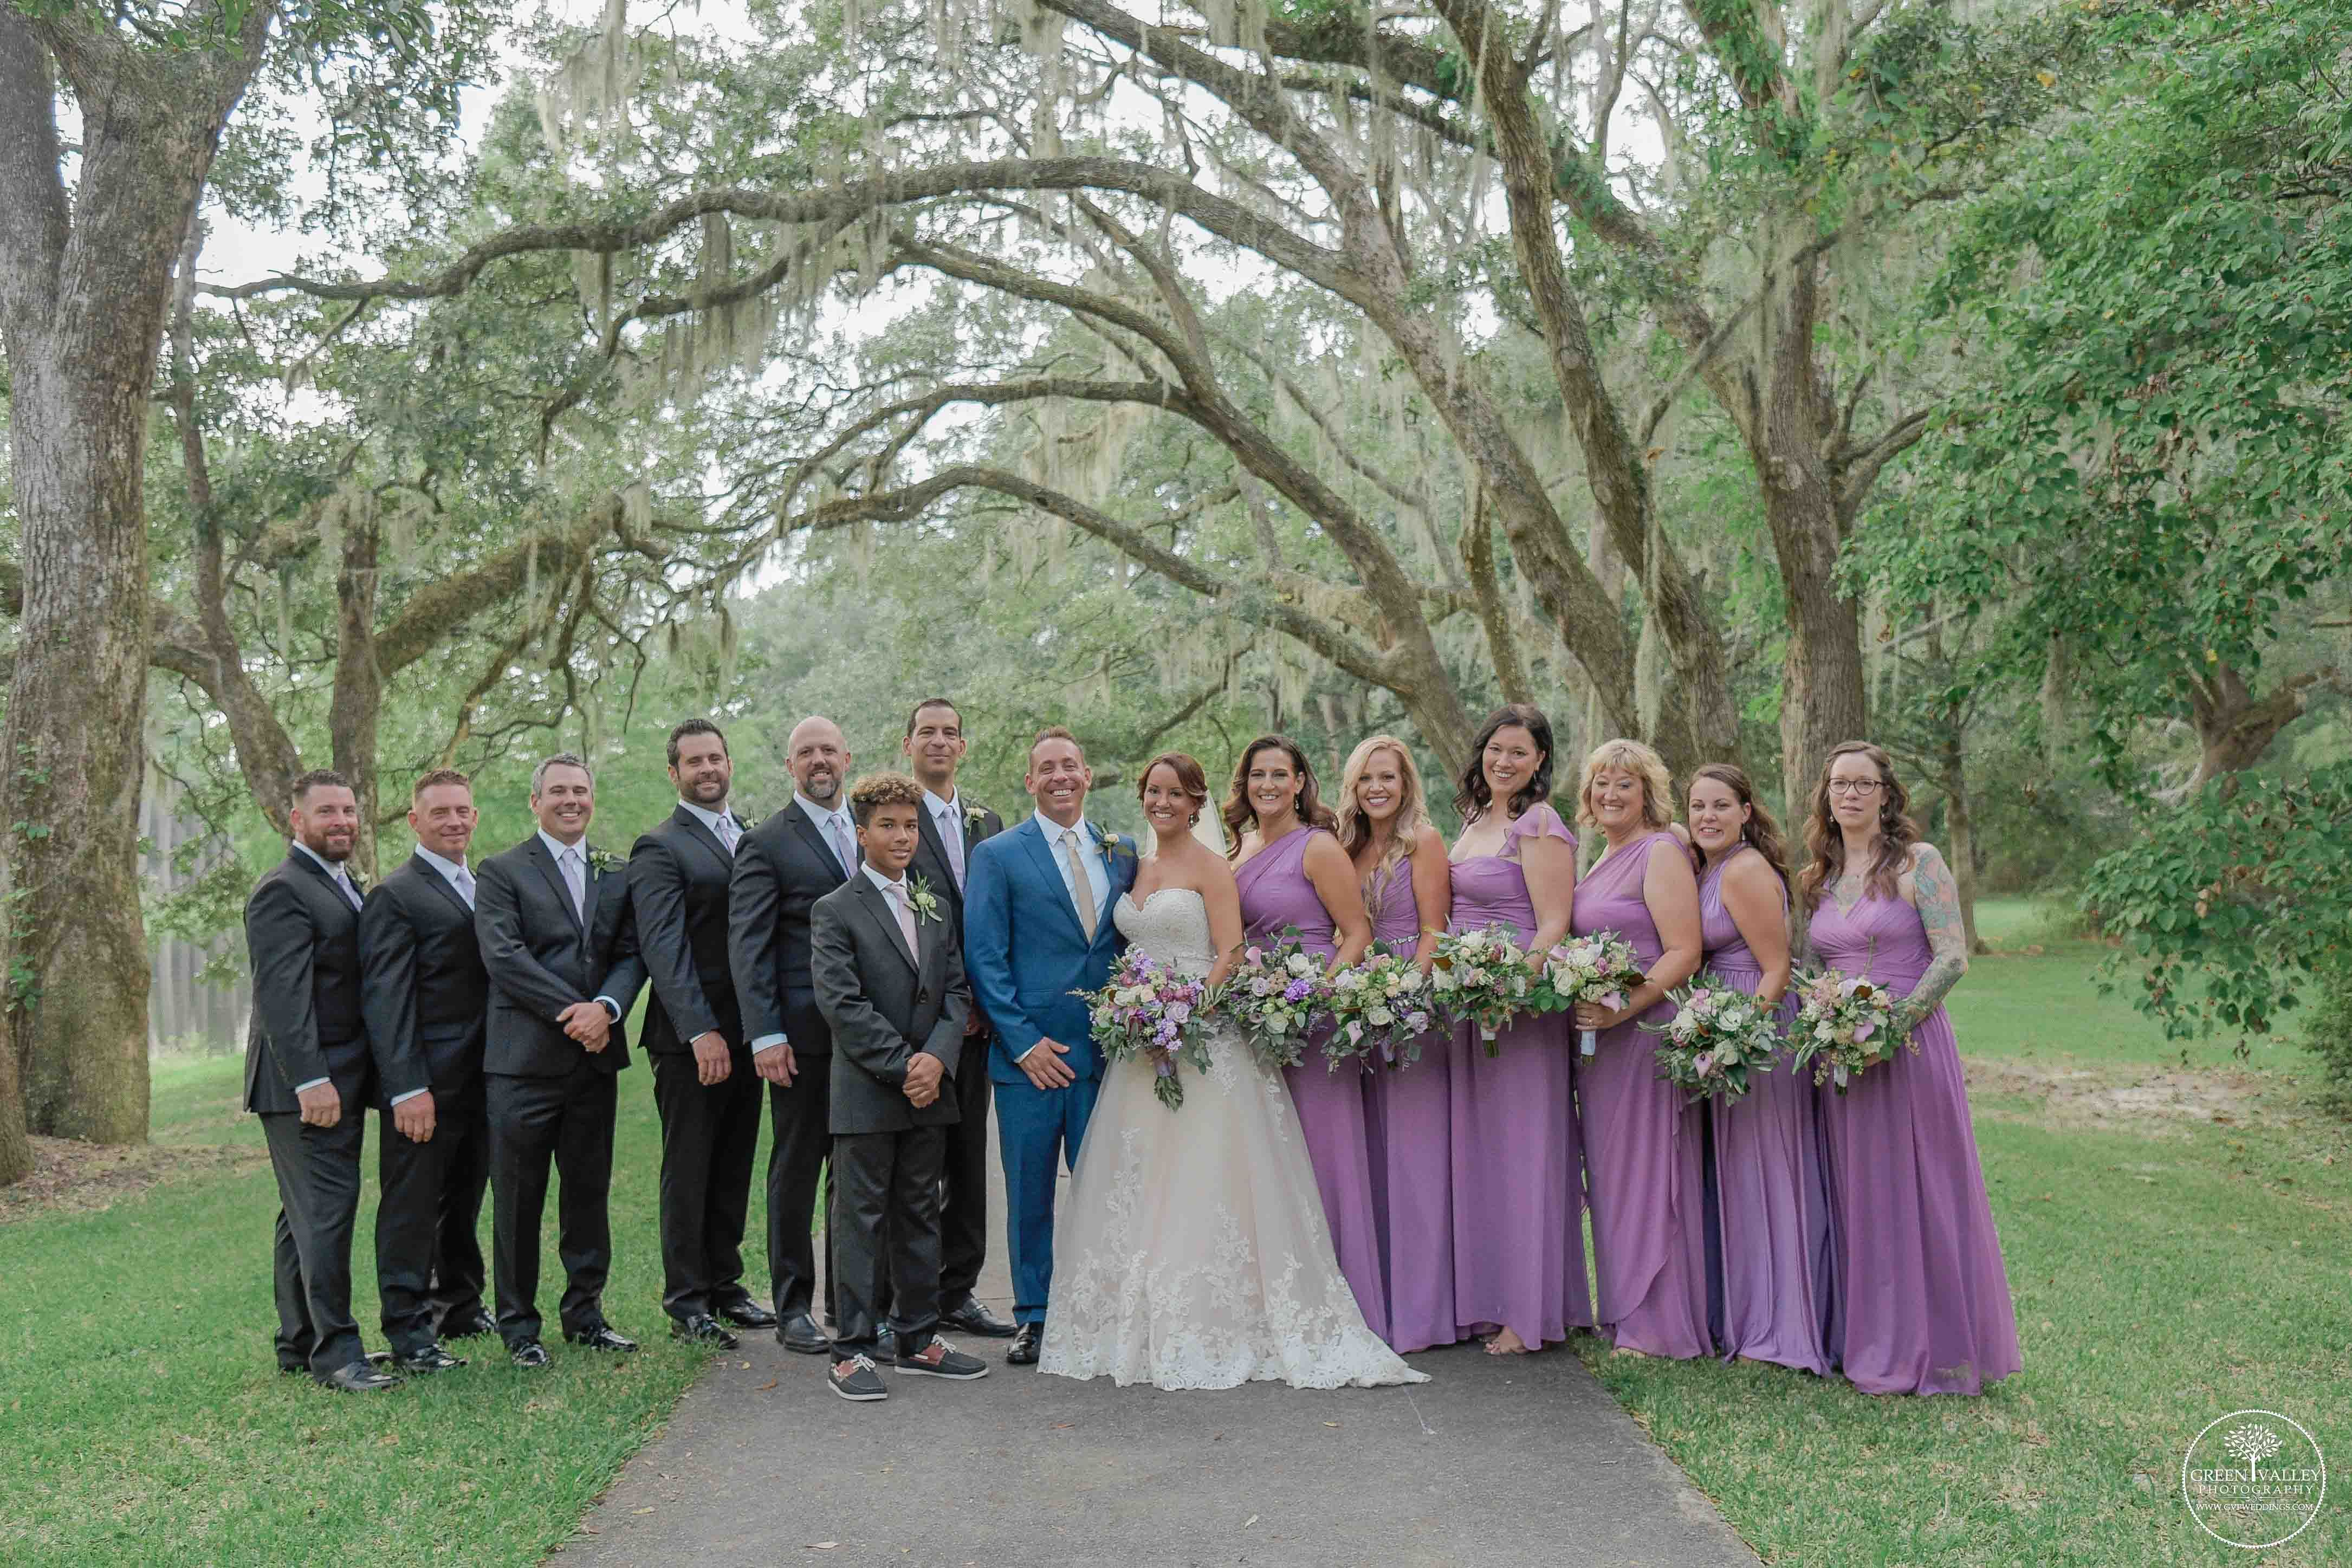 39052e31b0911d72f9ae5c0205002572 - How Much Does A Wedding At Brookgreen Gardens Cost